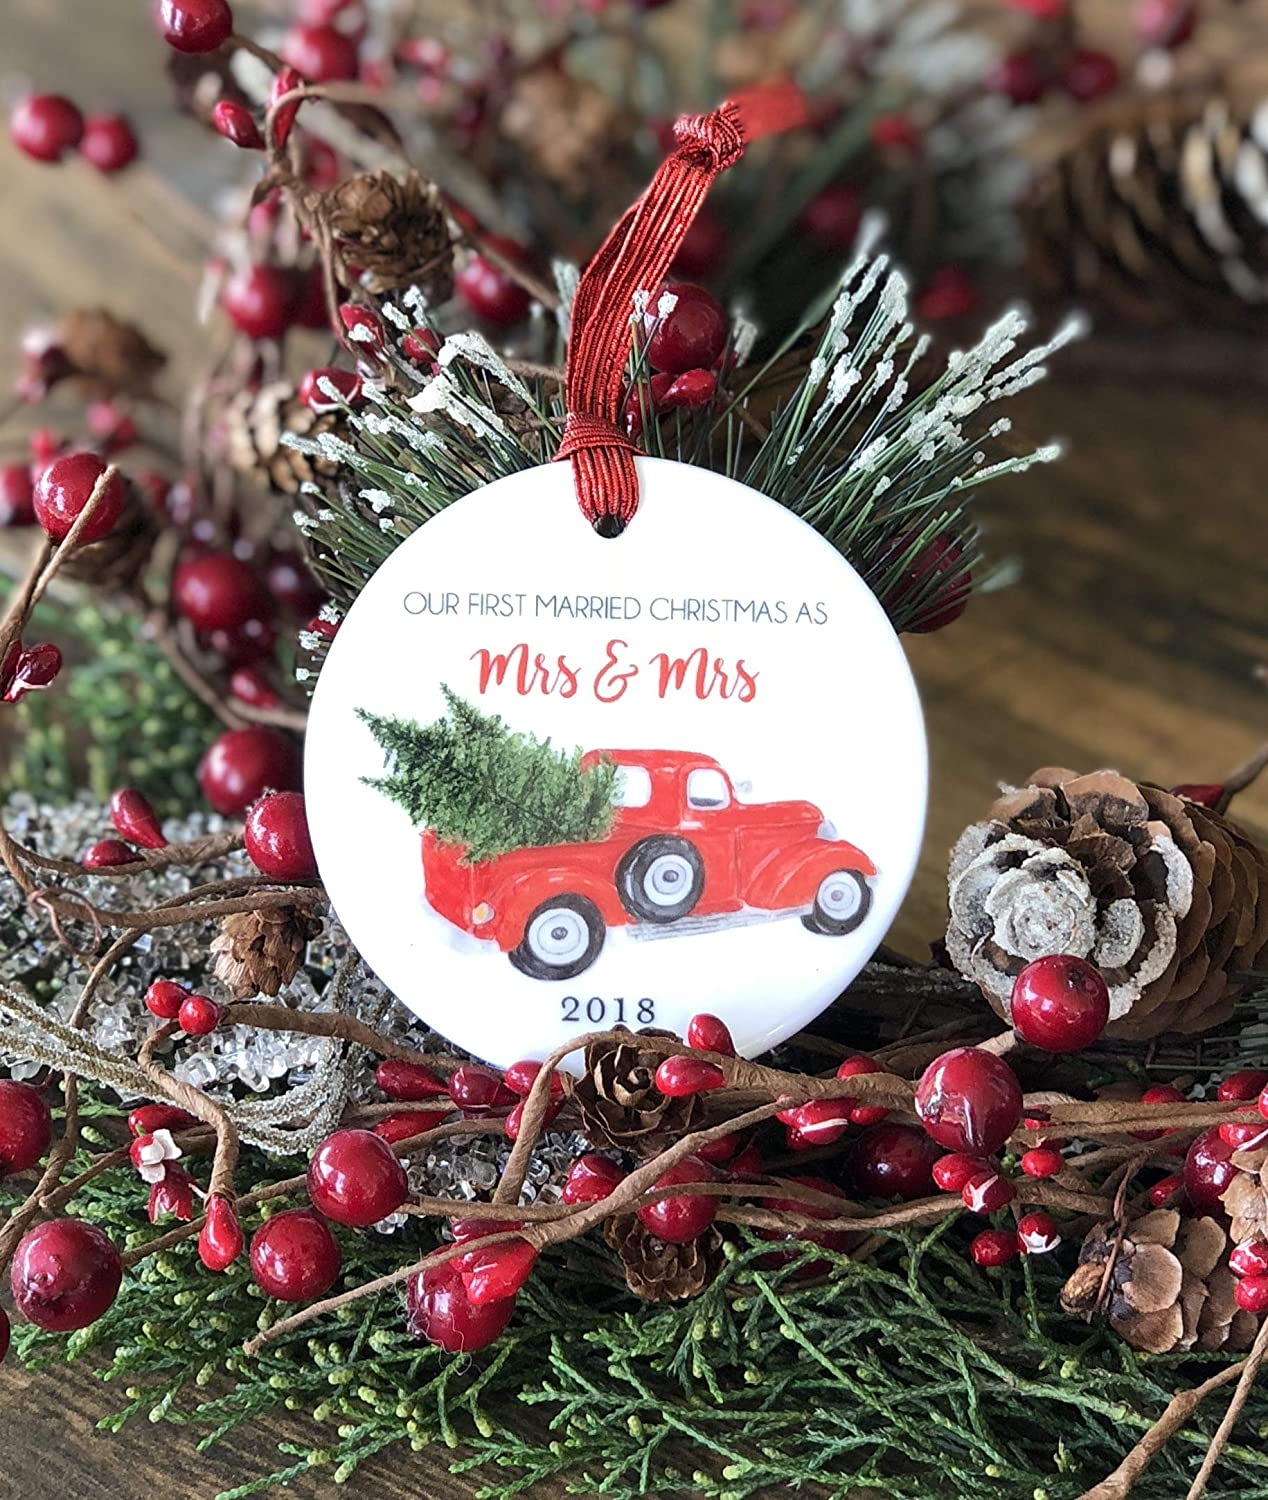 Amazon.com: Our First Married Christmas as Mrs and Mrs 2018 Red ...